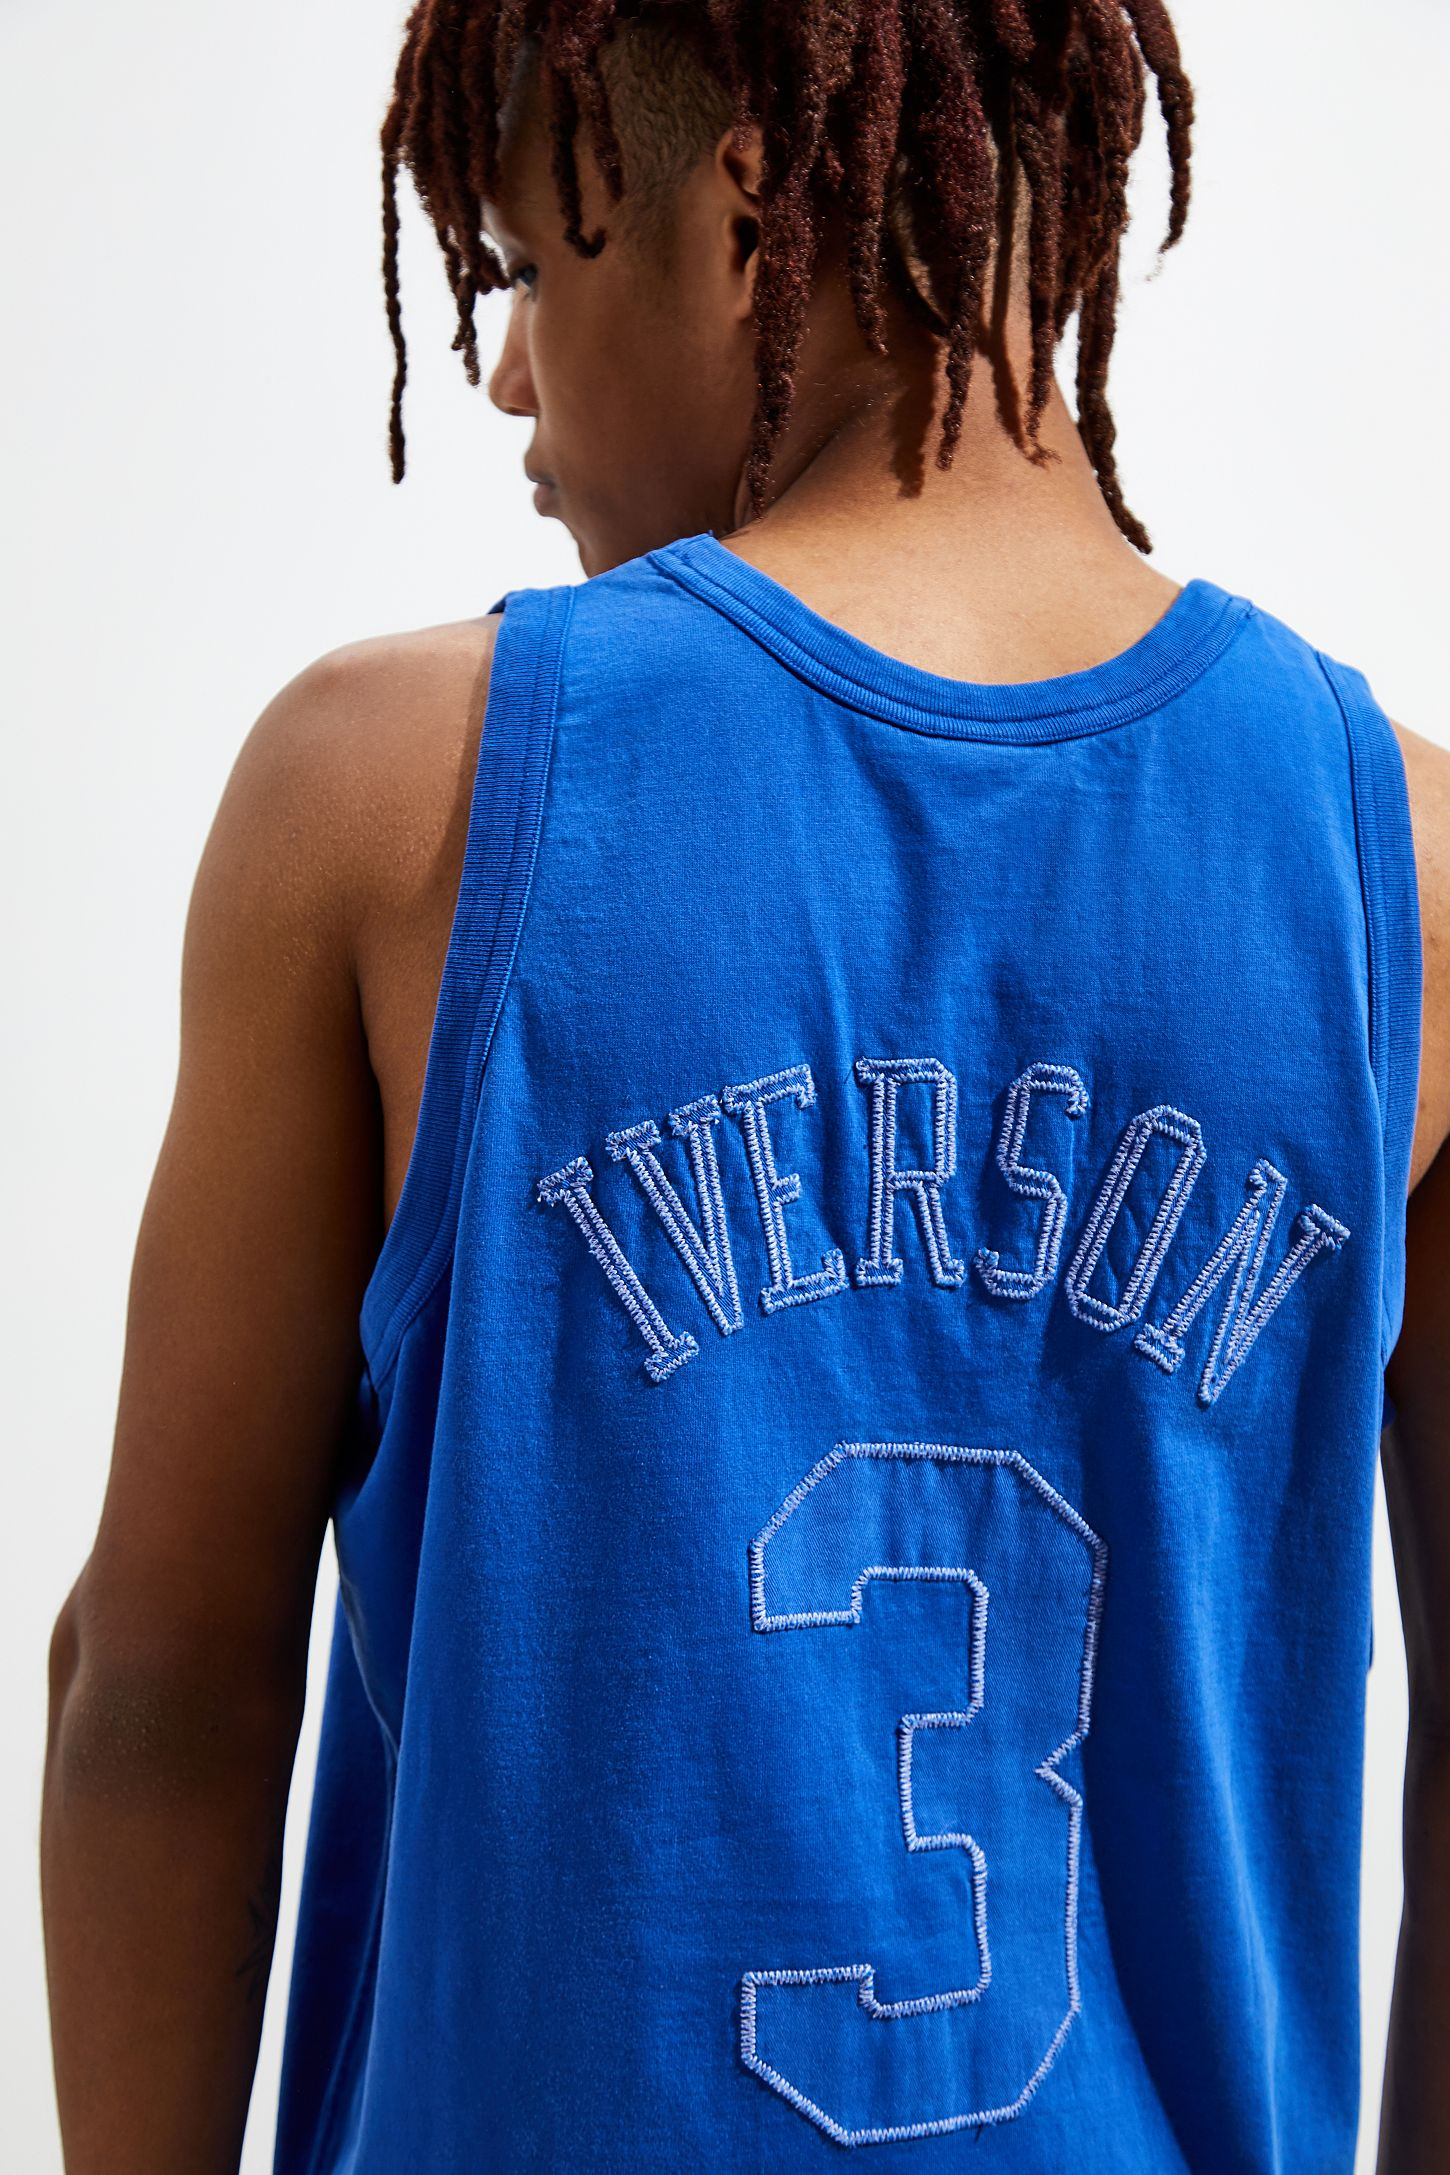 timeless design 01765 4be58 Mitchell & Ness Philadelphia 76ers Allen Iverson Washed Out Basketball  Jersey